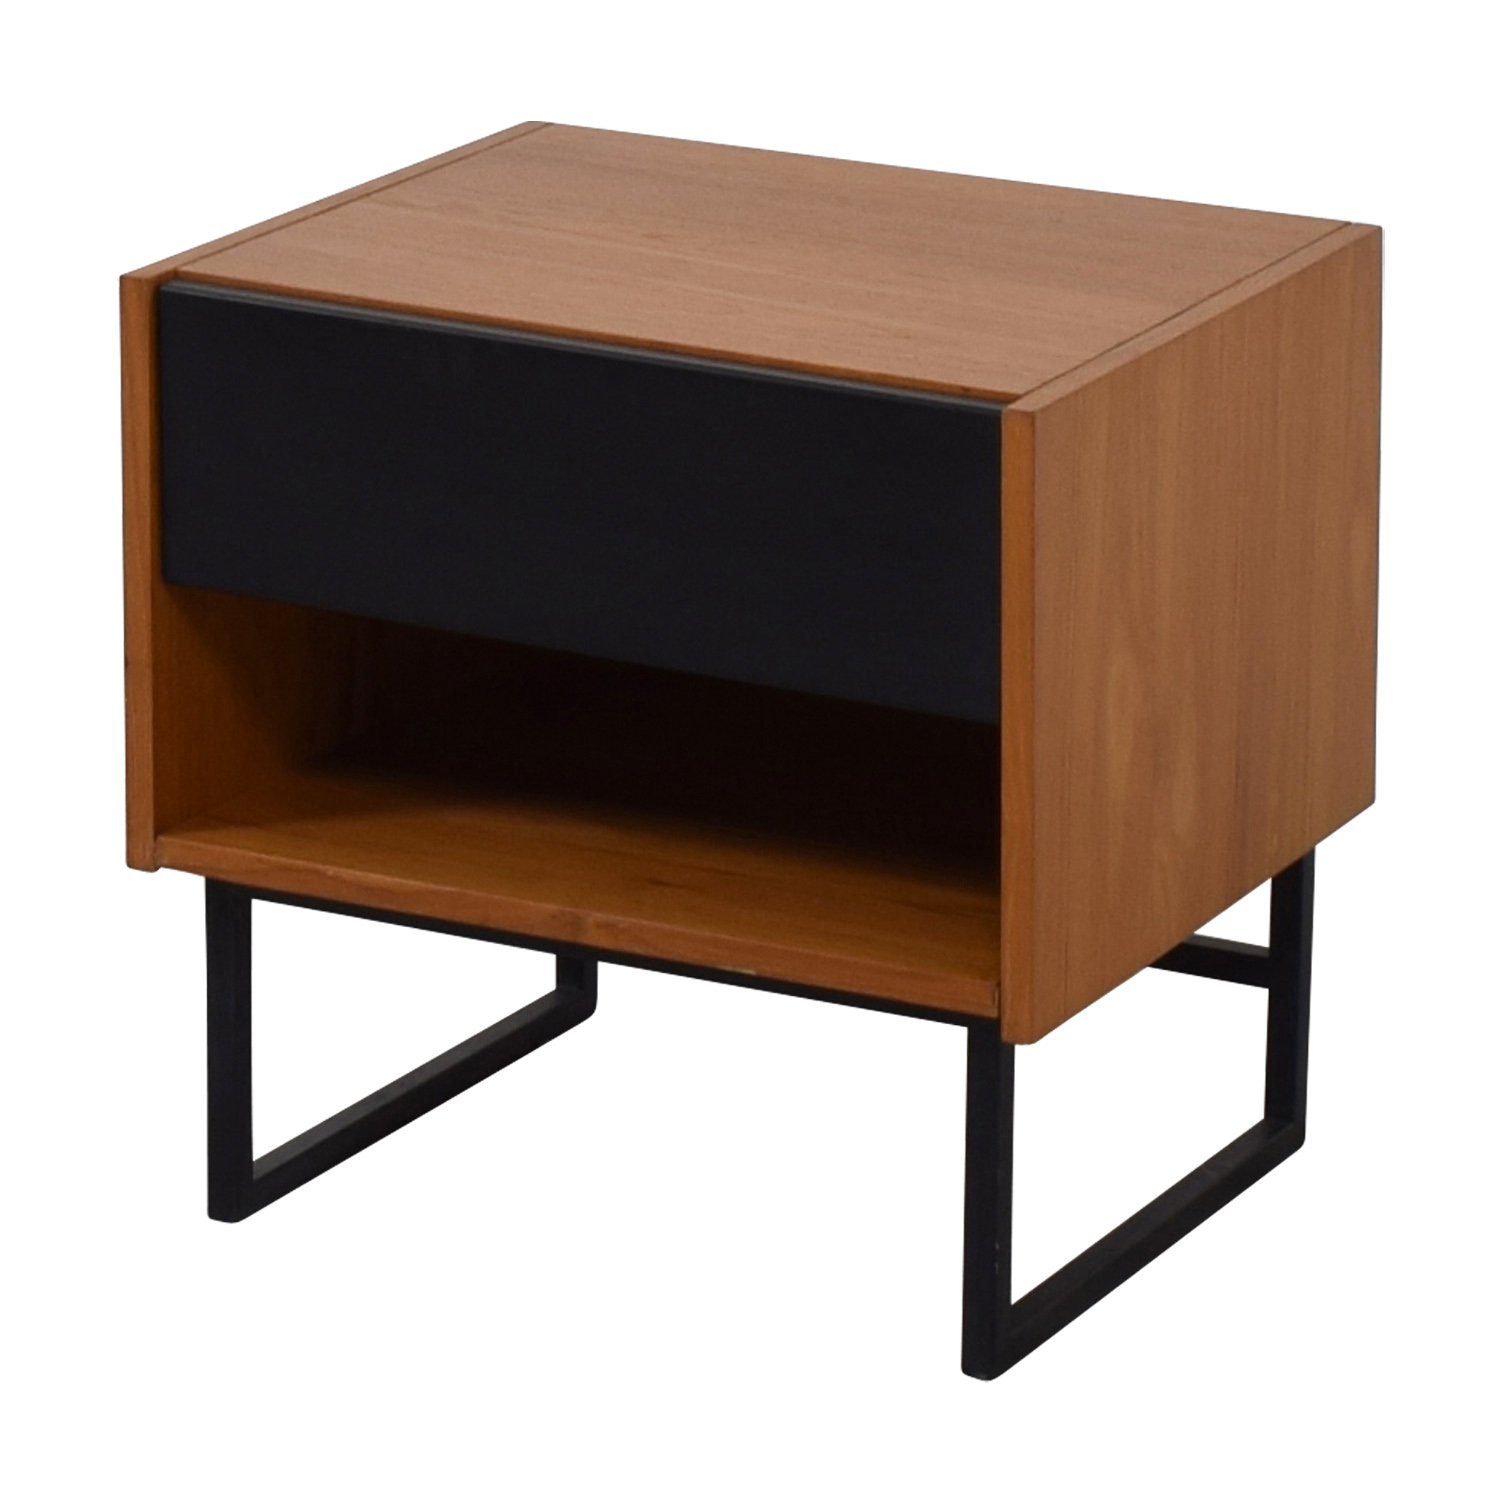 Crate And Barrel Tables: Crate & Barrel Crate & Barrel Single Drawer Side